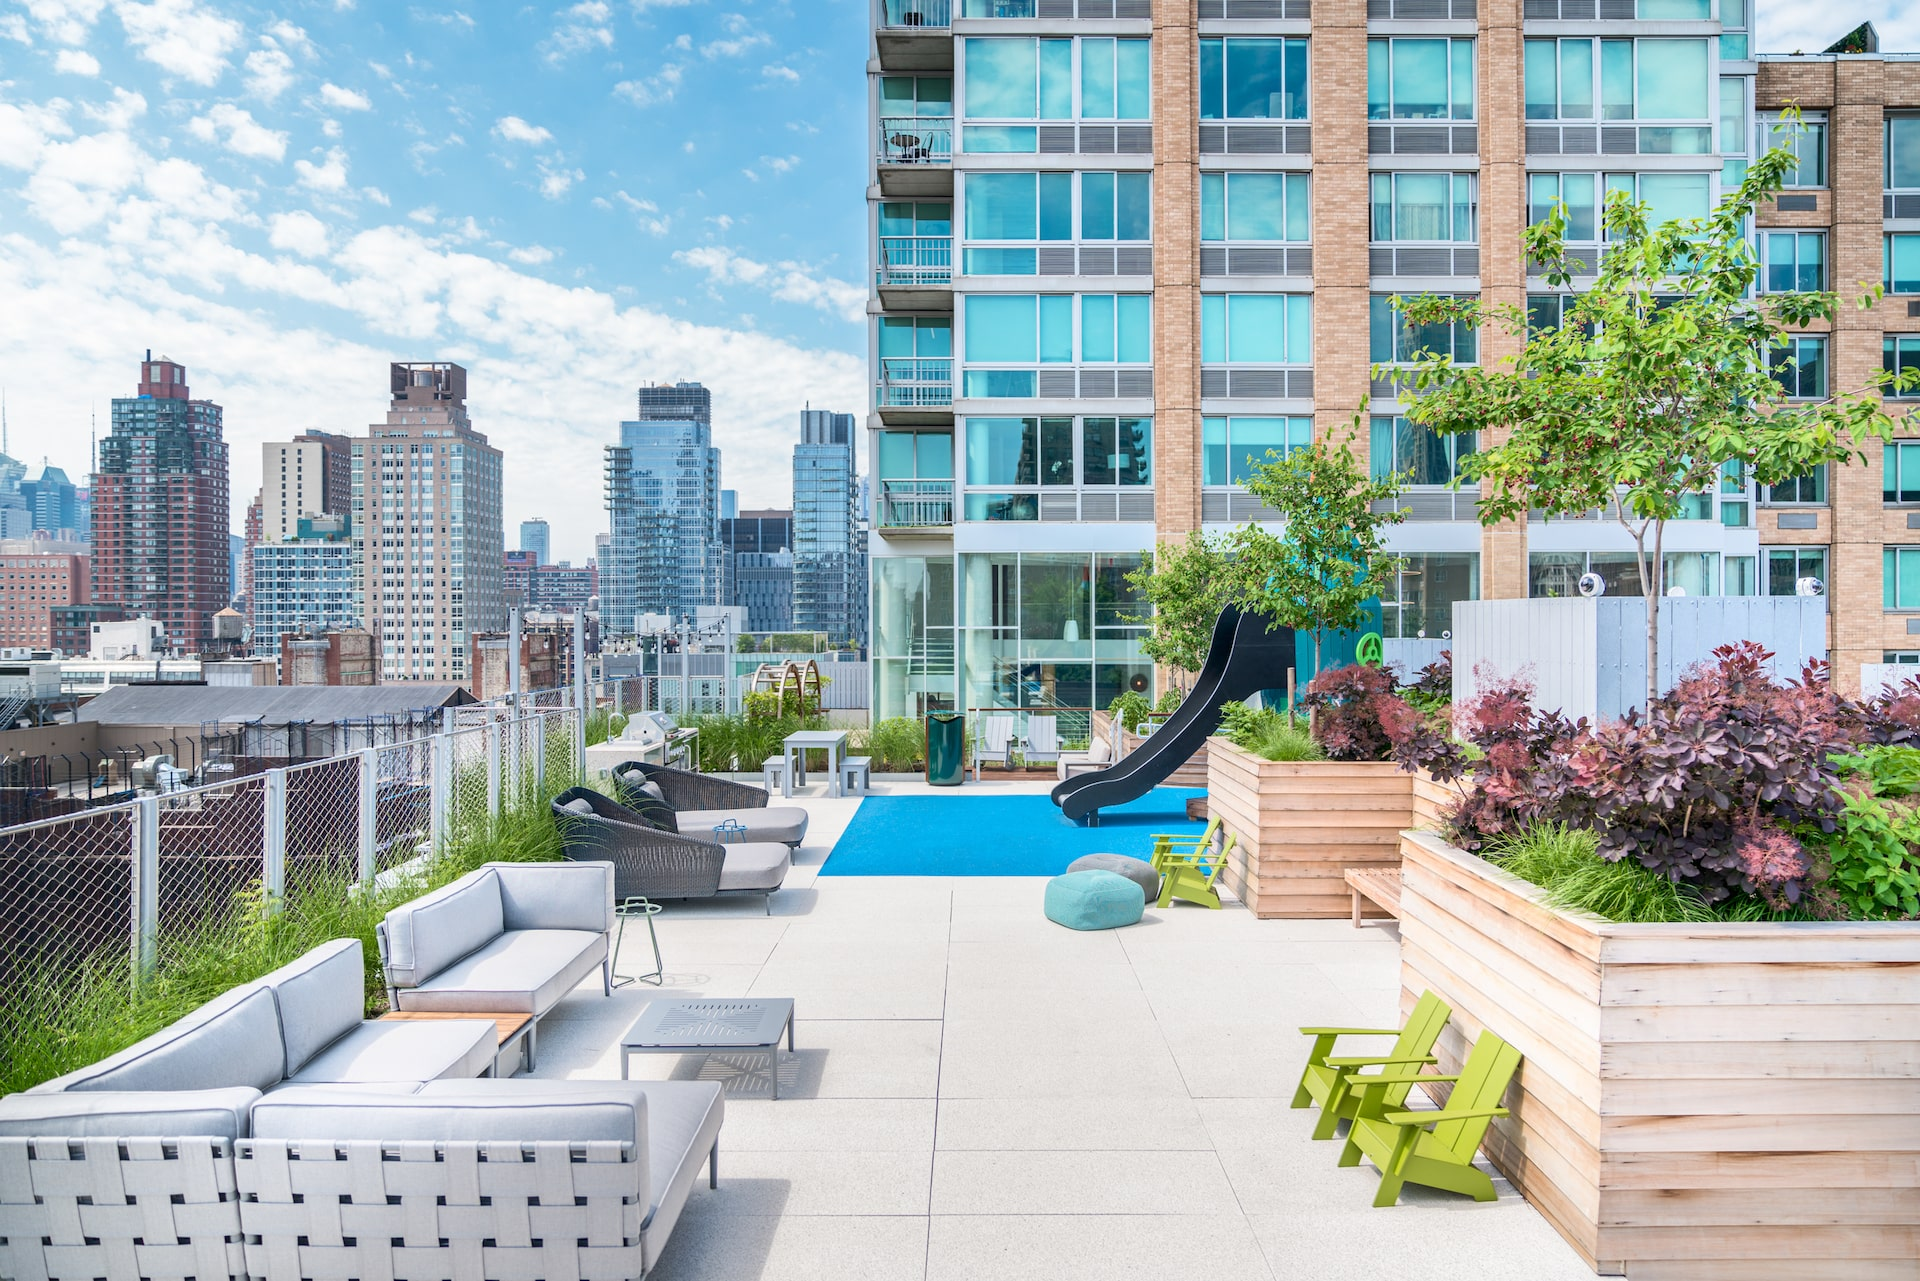 101 West End Avenue Amenities Rooftop playground